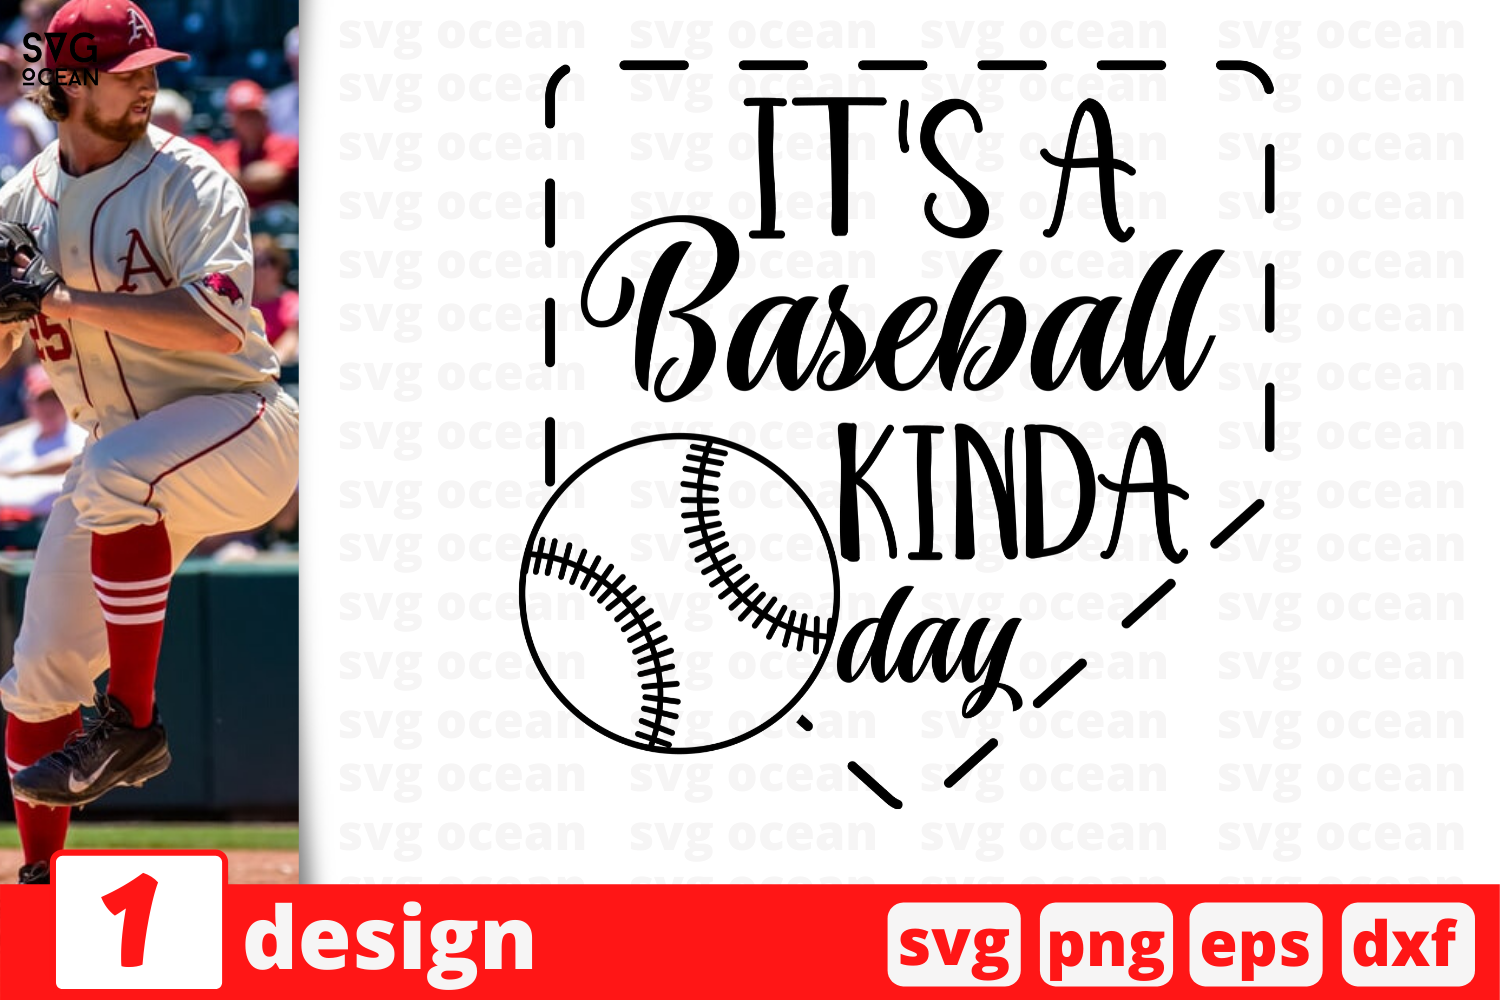 Download Free It S A Baseball Kinda Day Graphic By Svgocean Creative Fabrica for Cricut Explore, Silhouette and other cutting machines.